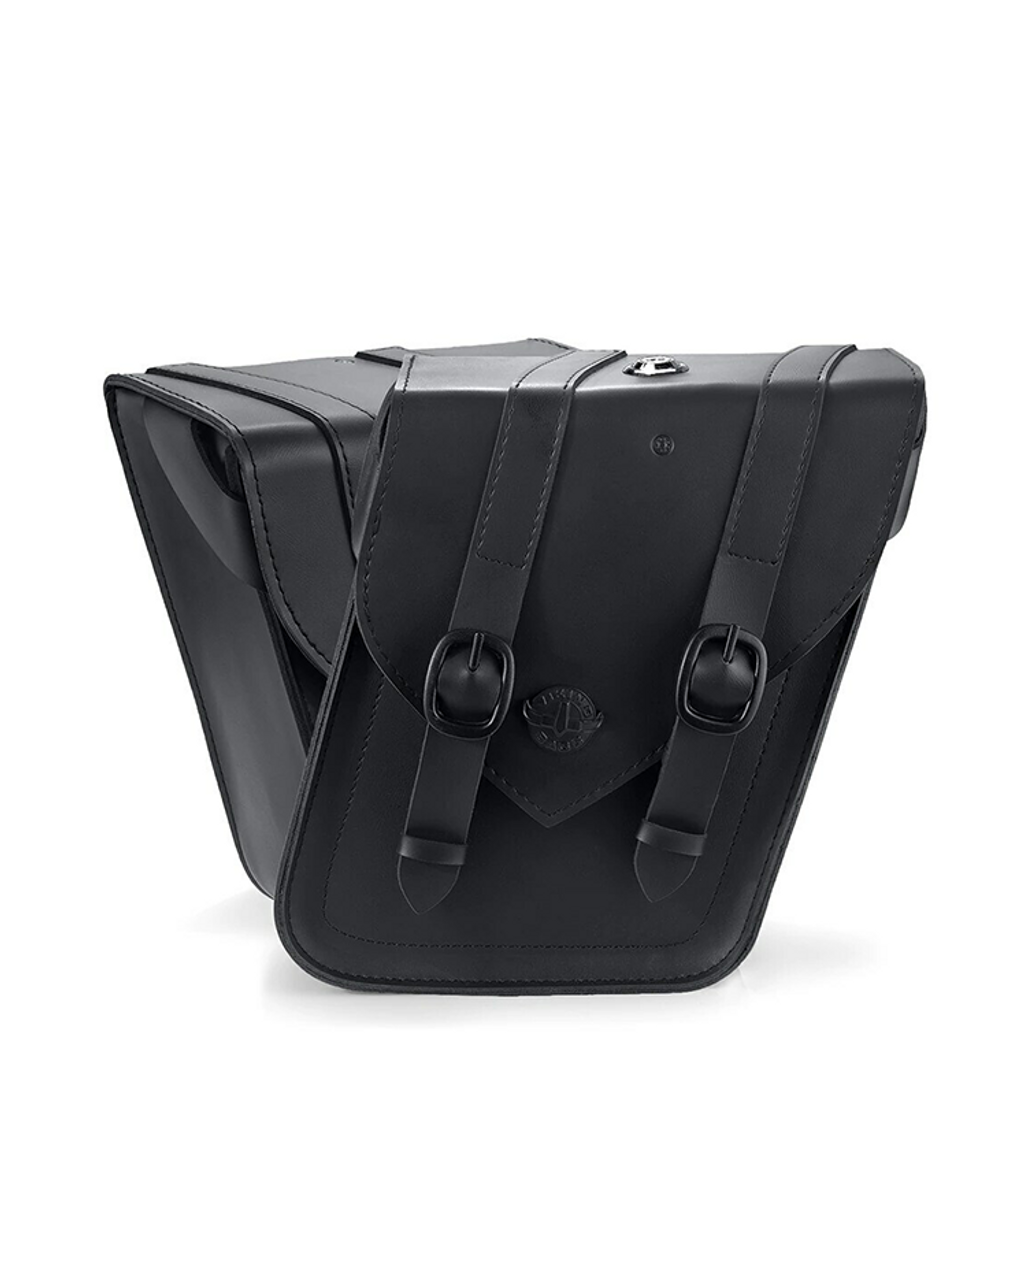 Viking Dark Age Compact Strapped Leather Motorcycle Saddlebags For Sportster 883 Low XL883L Both Bags View